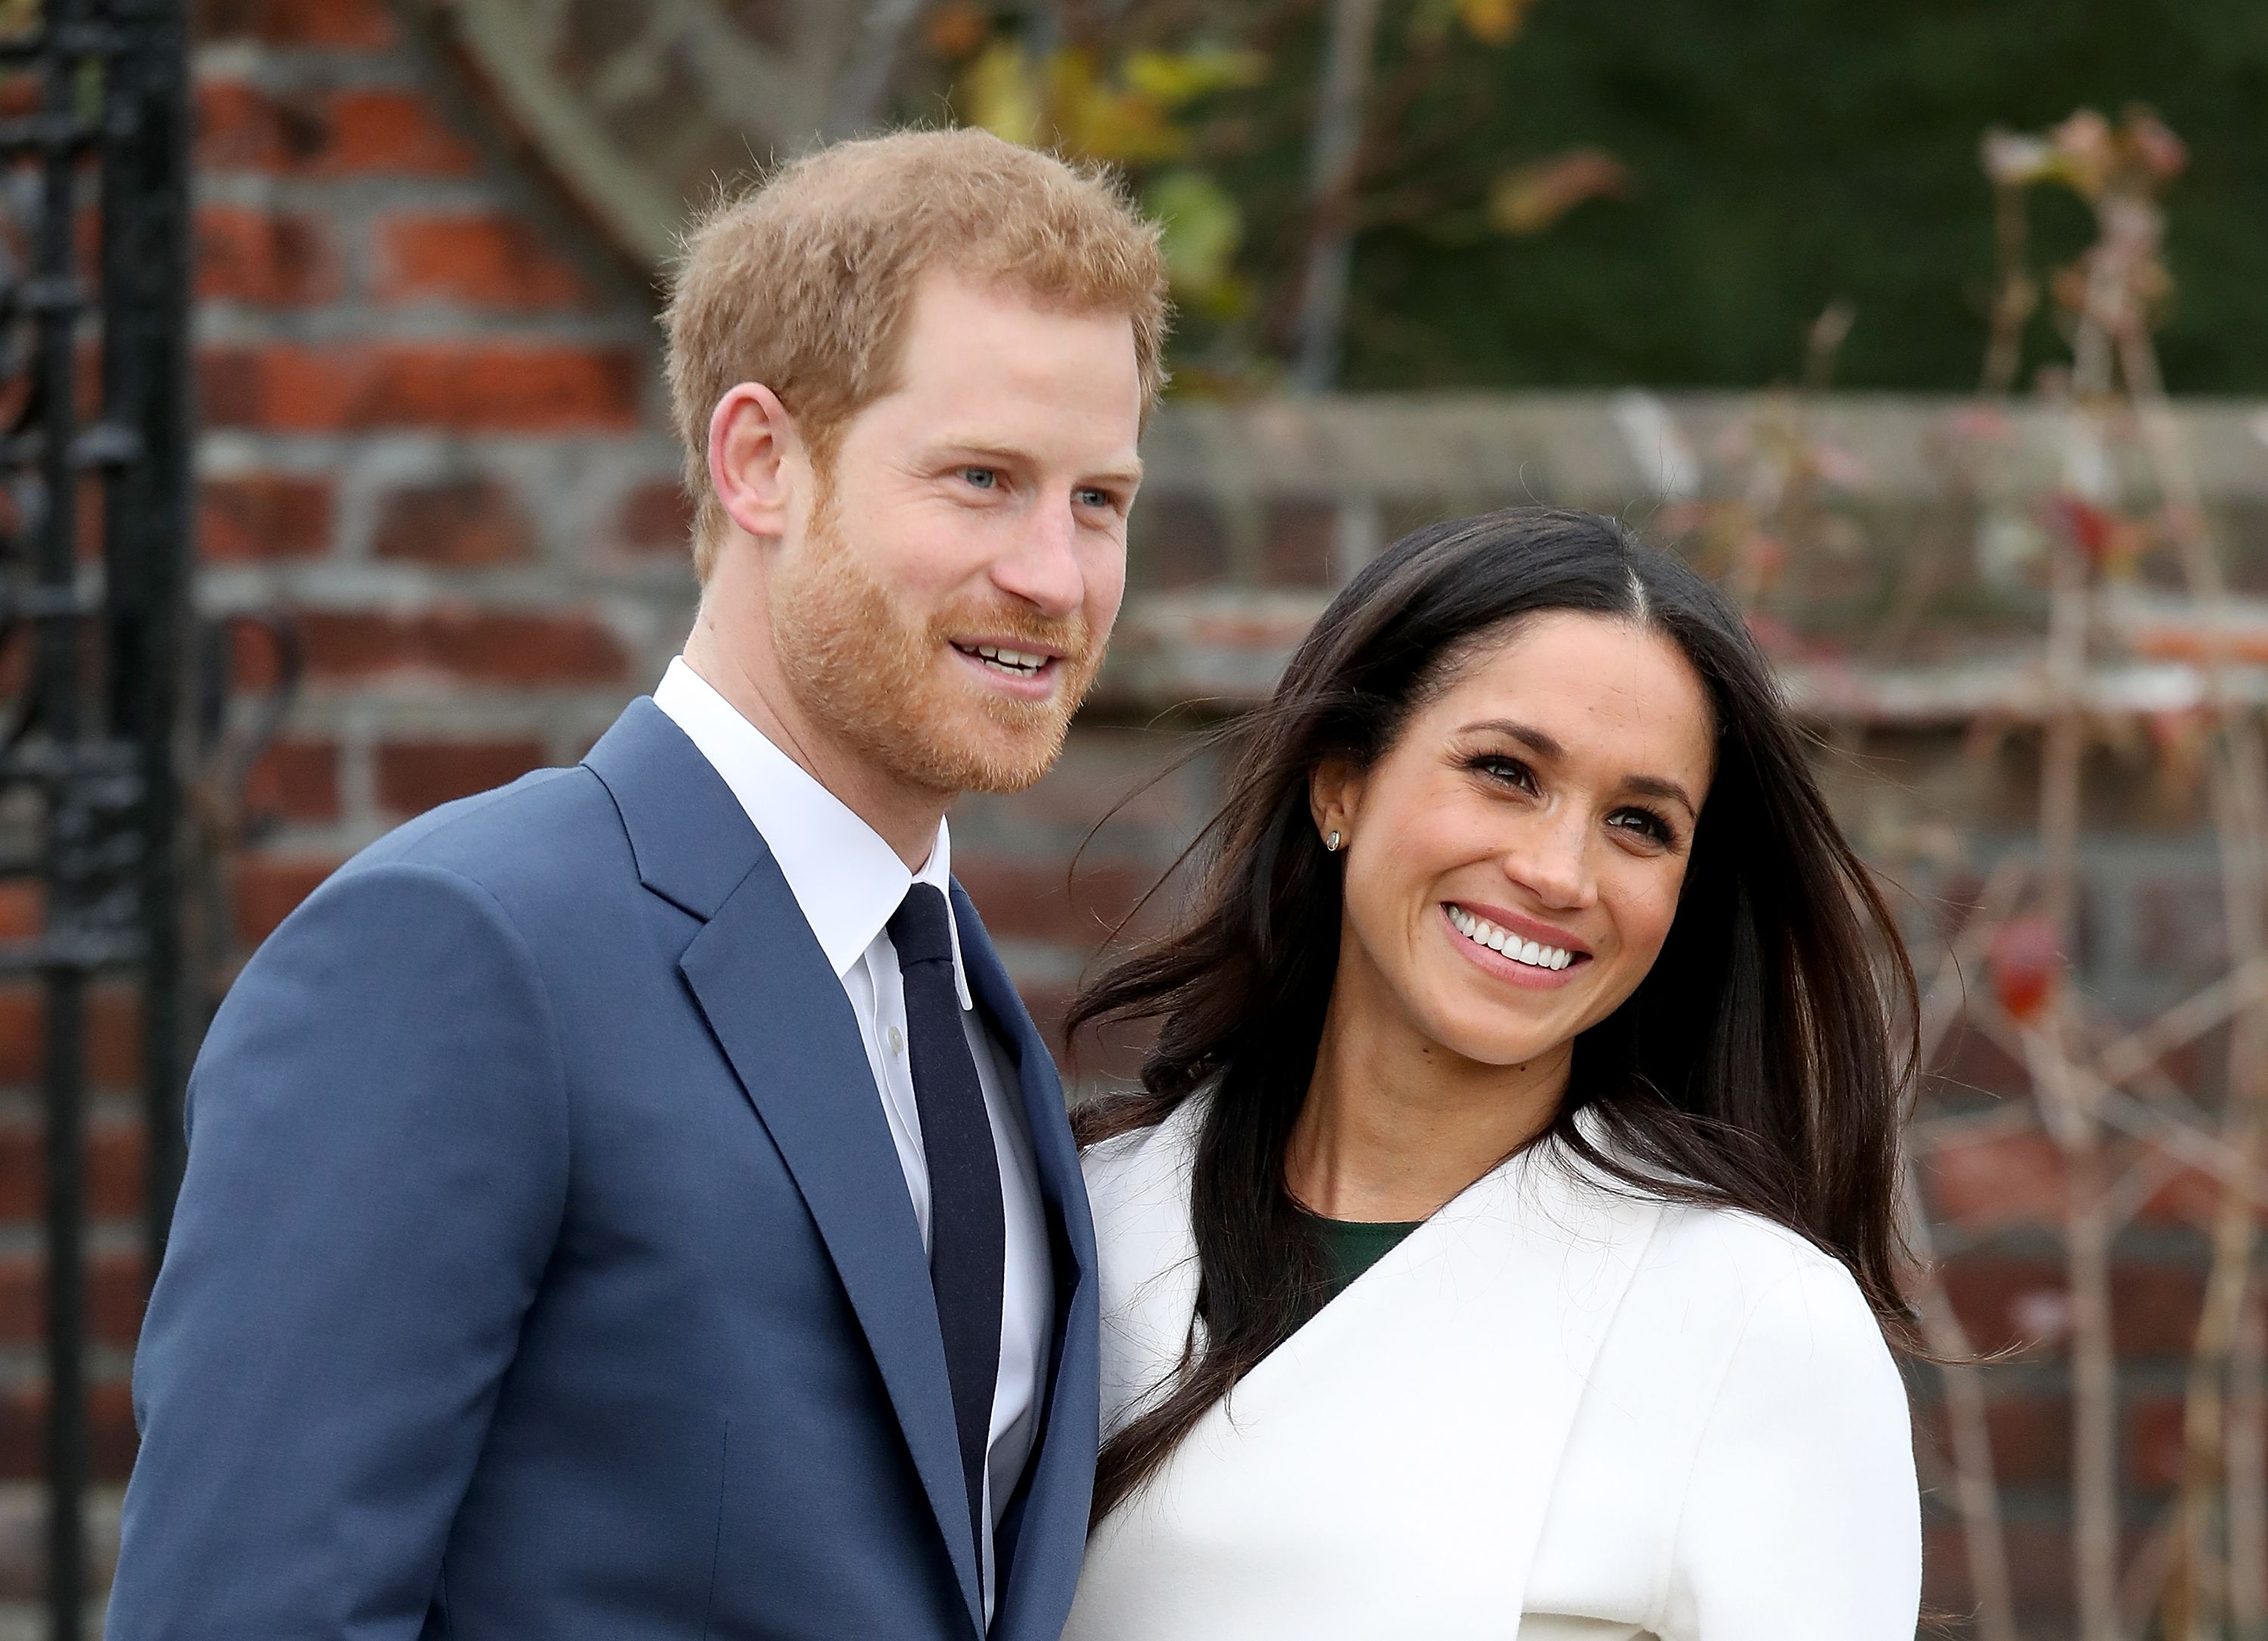 Prince Harry and actress Meghan Markle at an official photocall to announce their engagement at The Sunken Gardens at Kensington Palace on November 27, 2017. | Photo: Getty Images